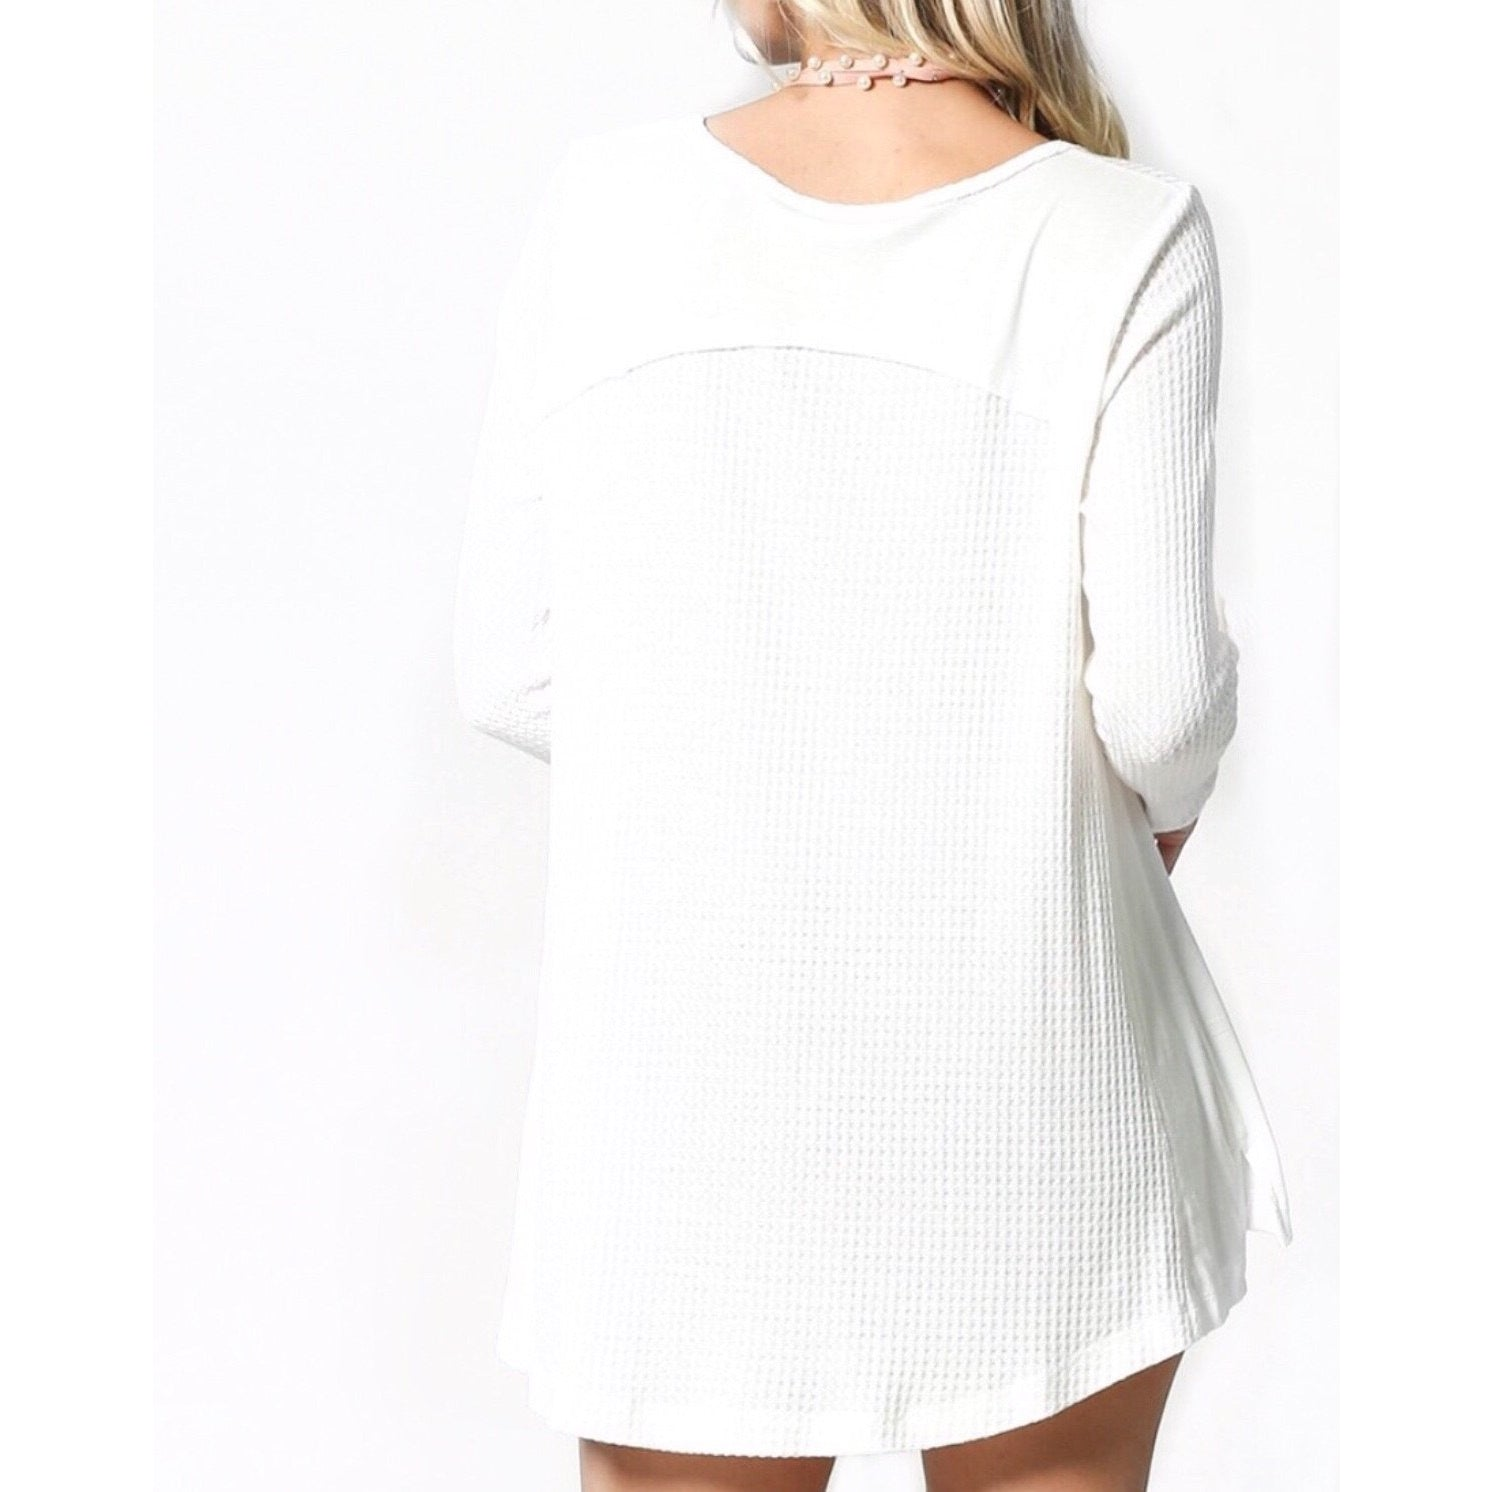 Sale ! Bermuda Long Sleeve Lightweight Thermal Top in Almost White - Glamco Boutique